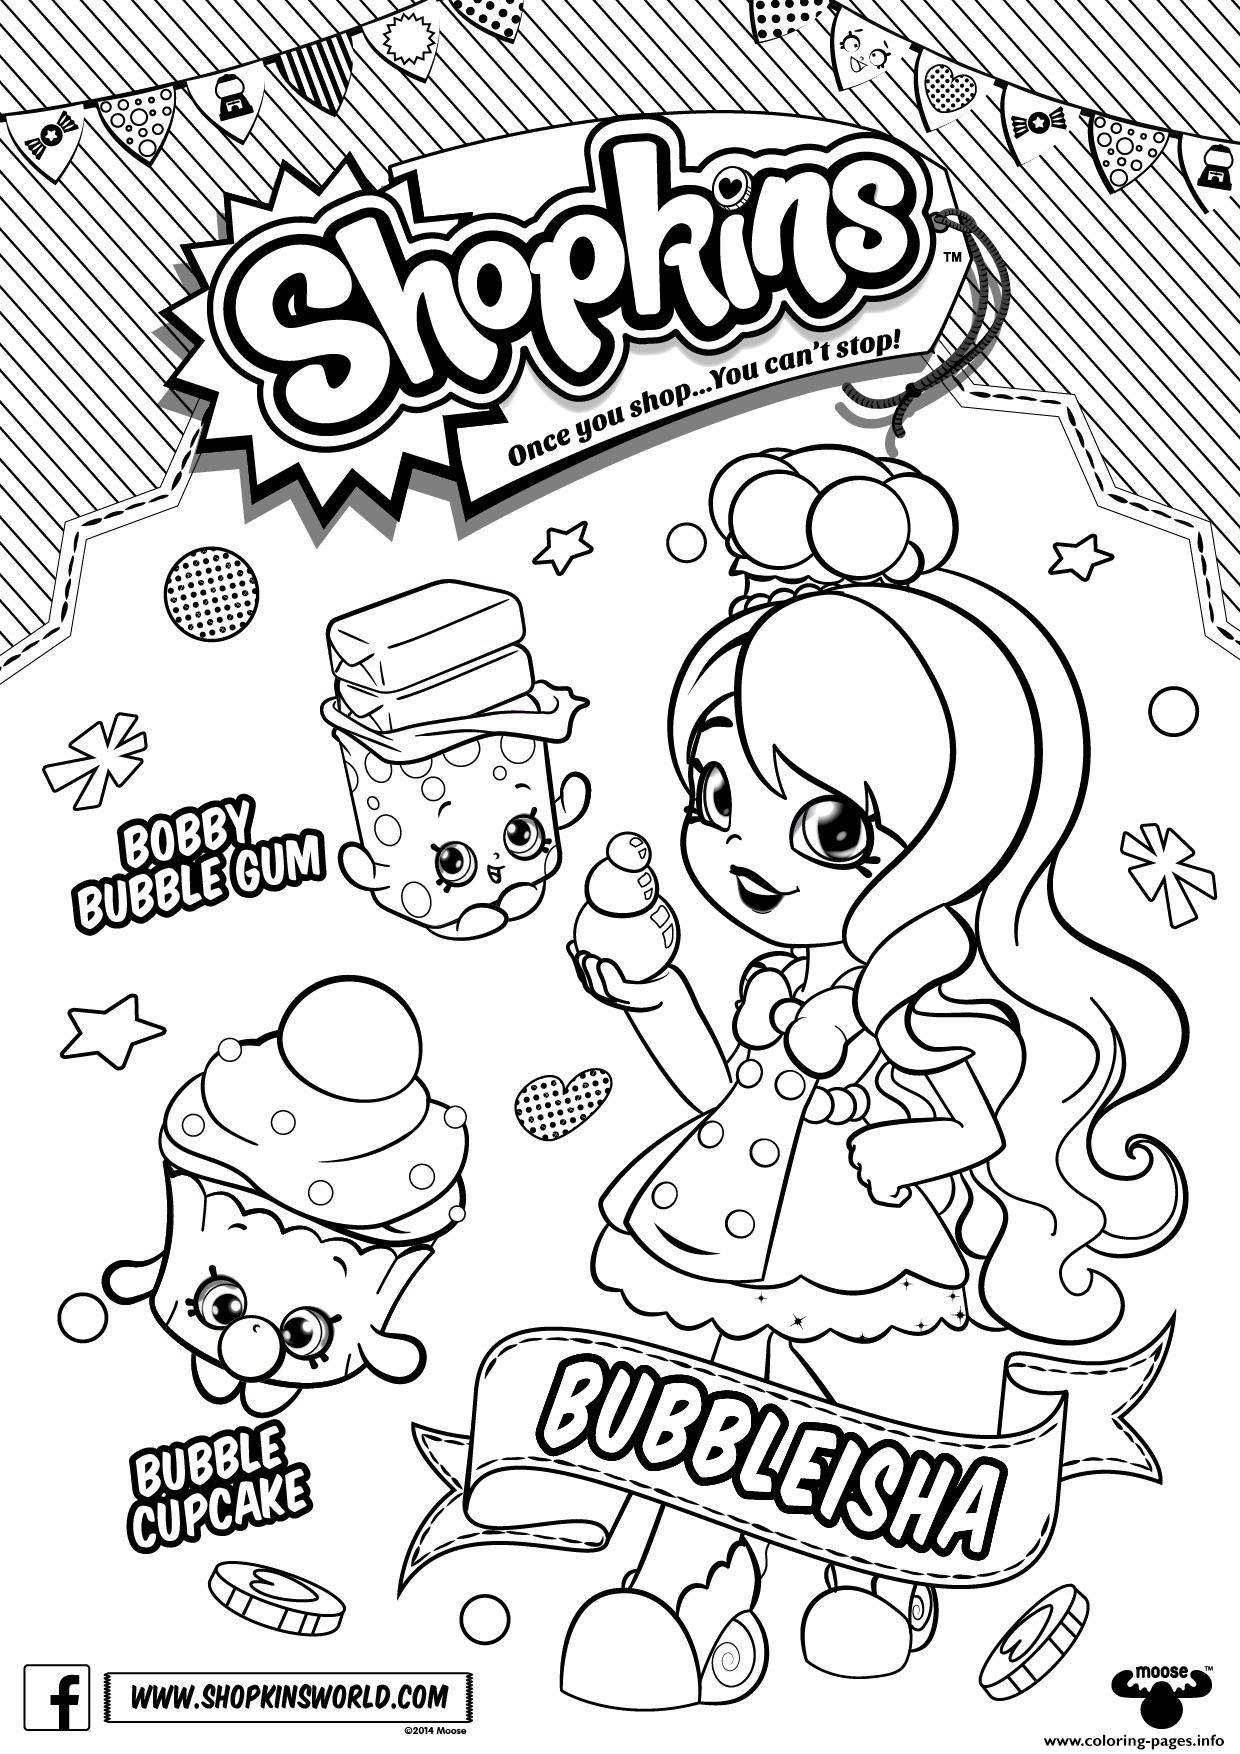 Shopkins valentines coloring pages - Print Bubbleisha Shopkins Shoppies With Bubble Gum Coloring Pages